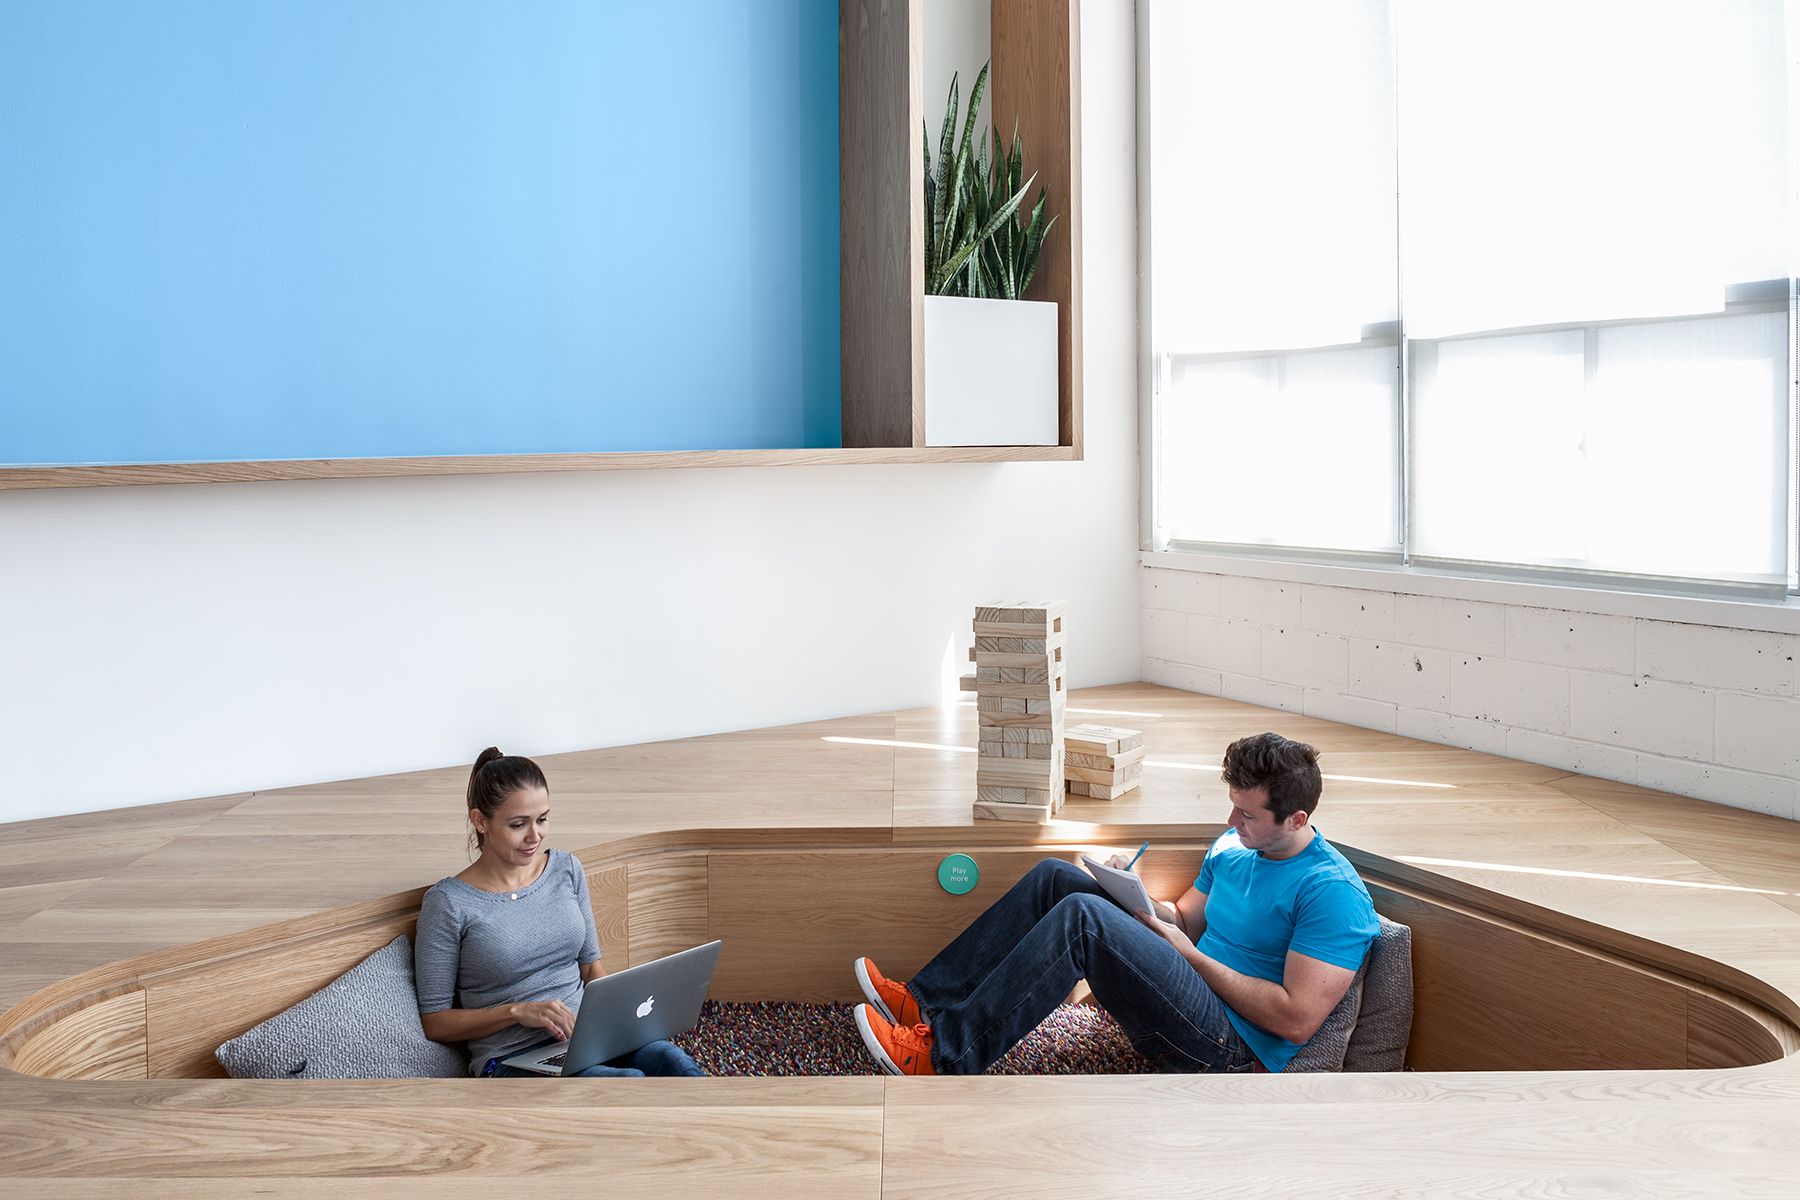 relaxation areas in workplace